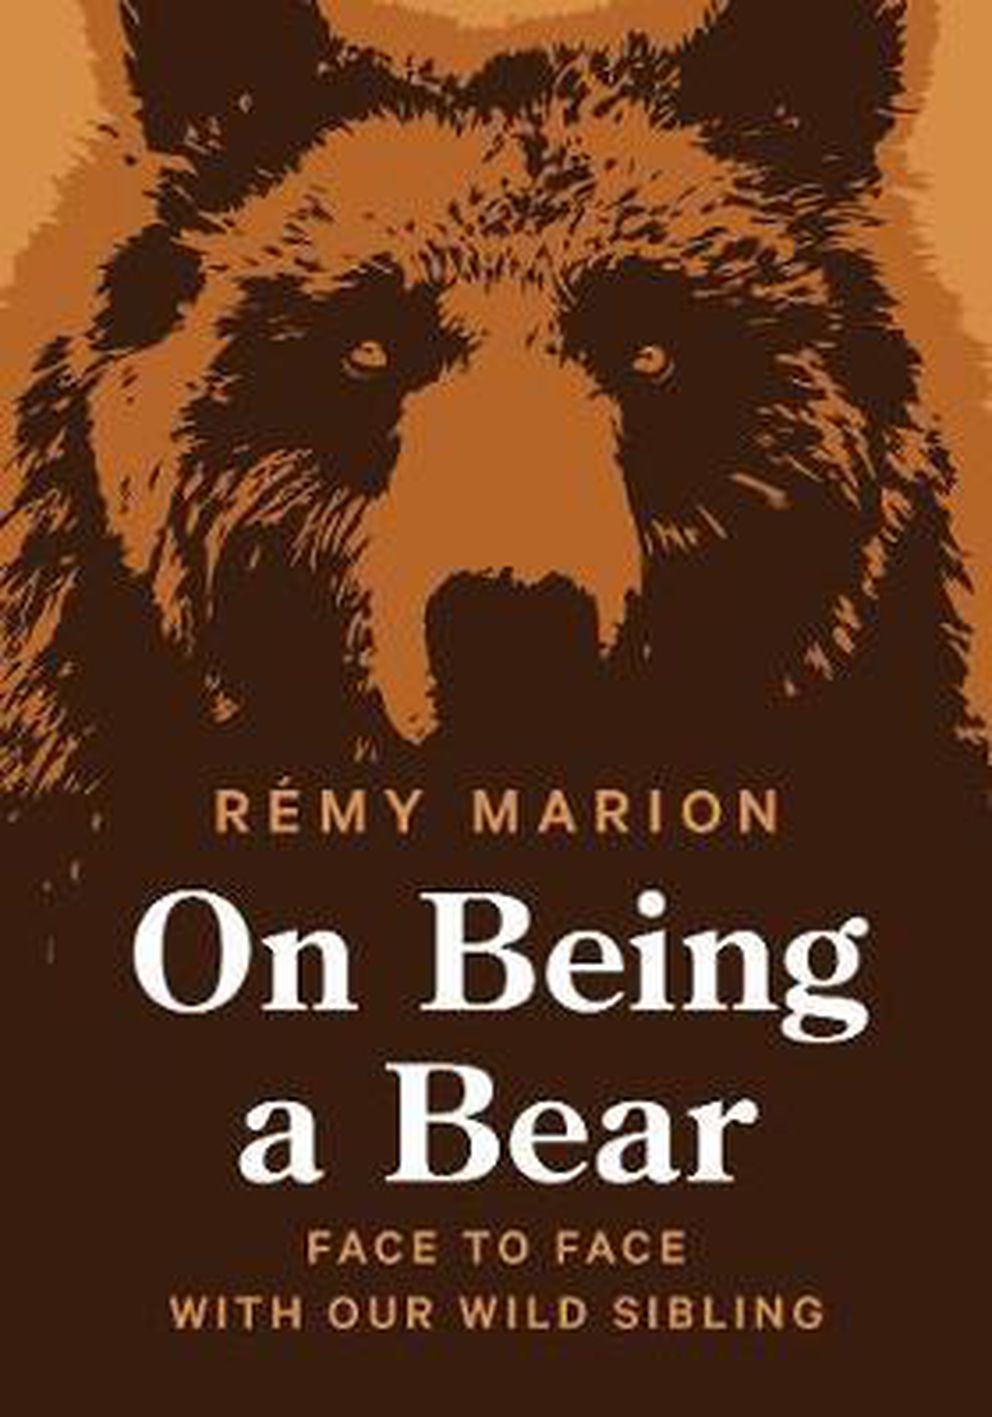 'On Being a Bear: Face to Face with our Wild Sibling, ' by Rémy Marion